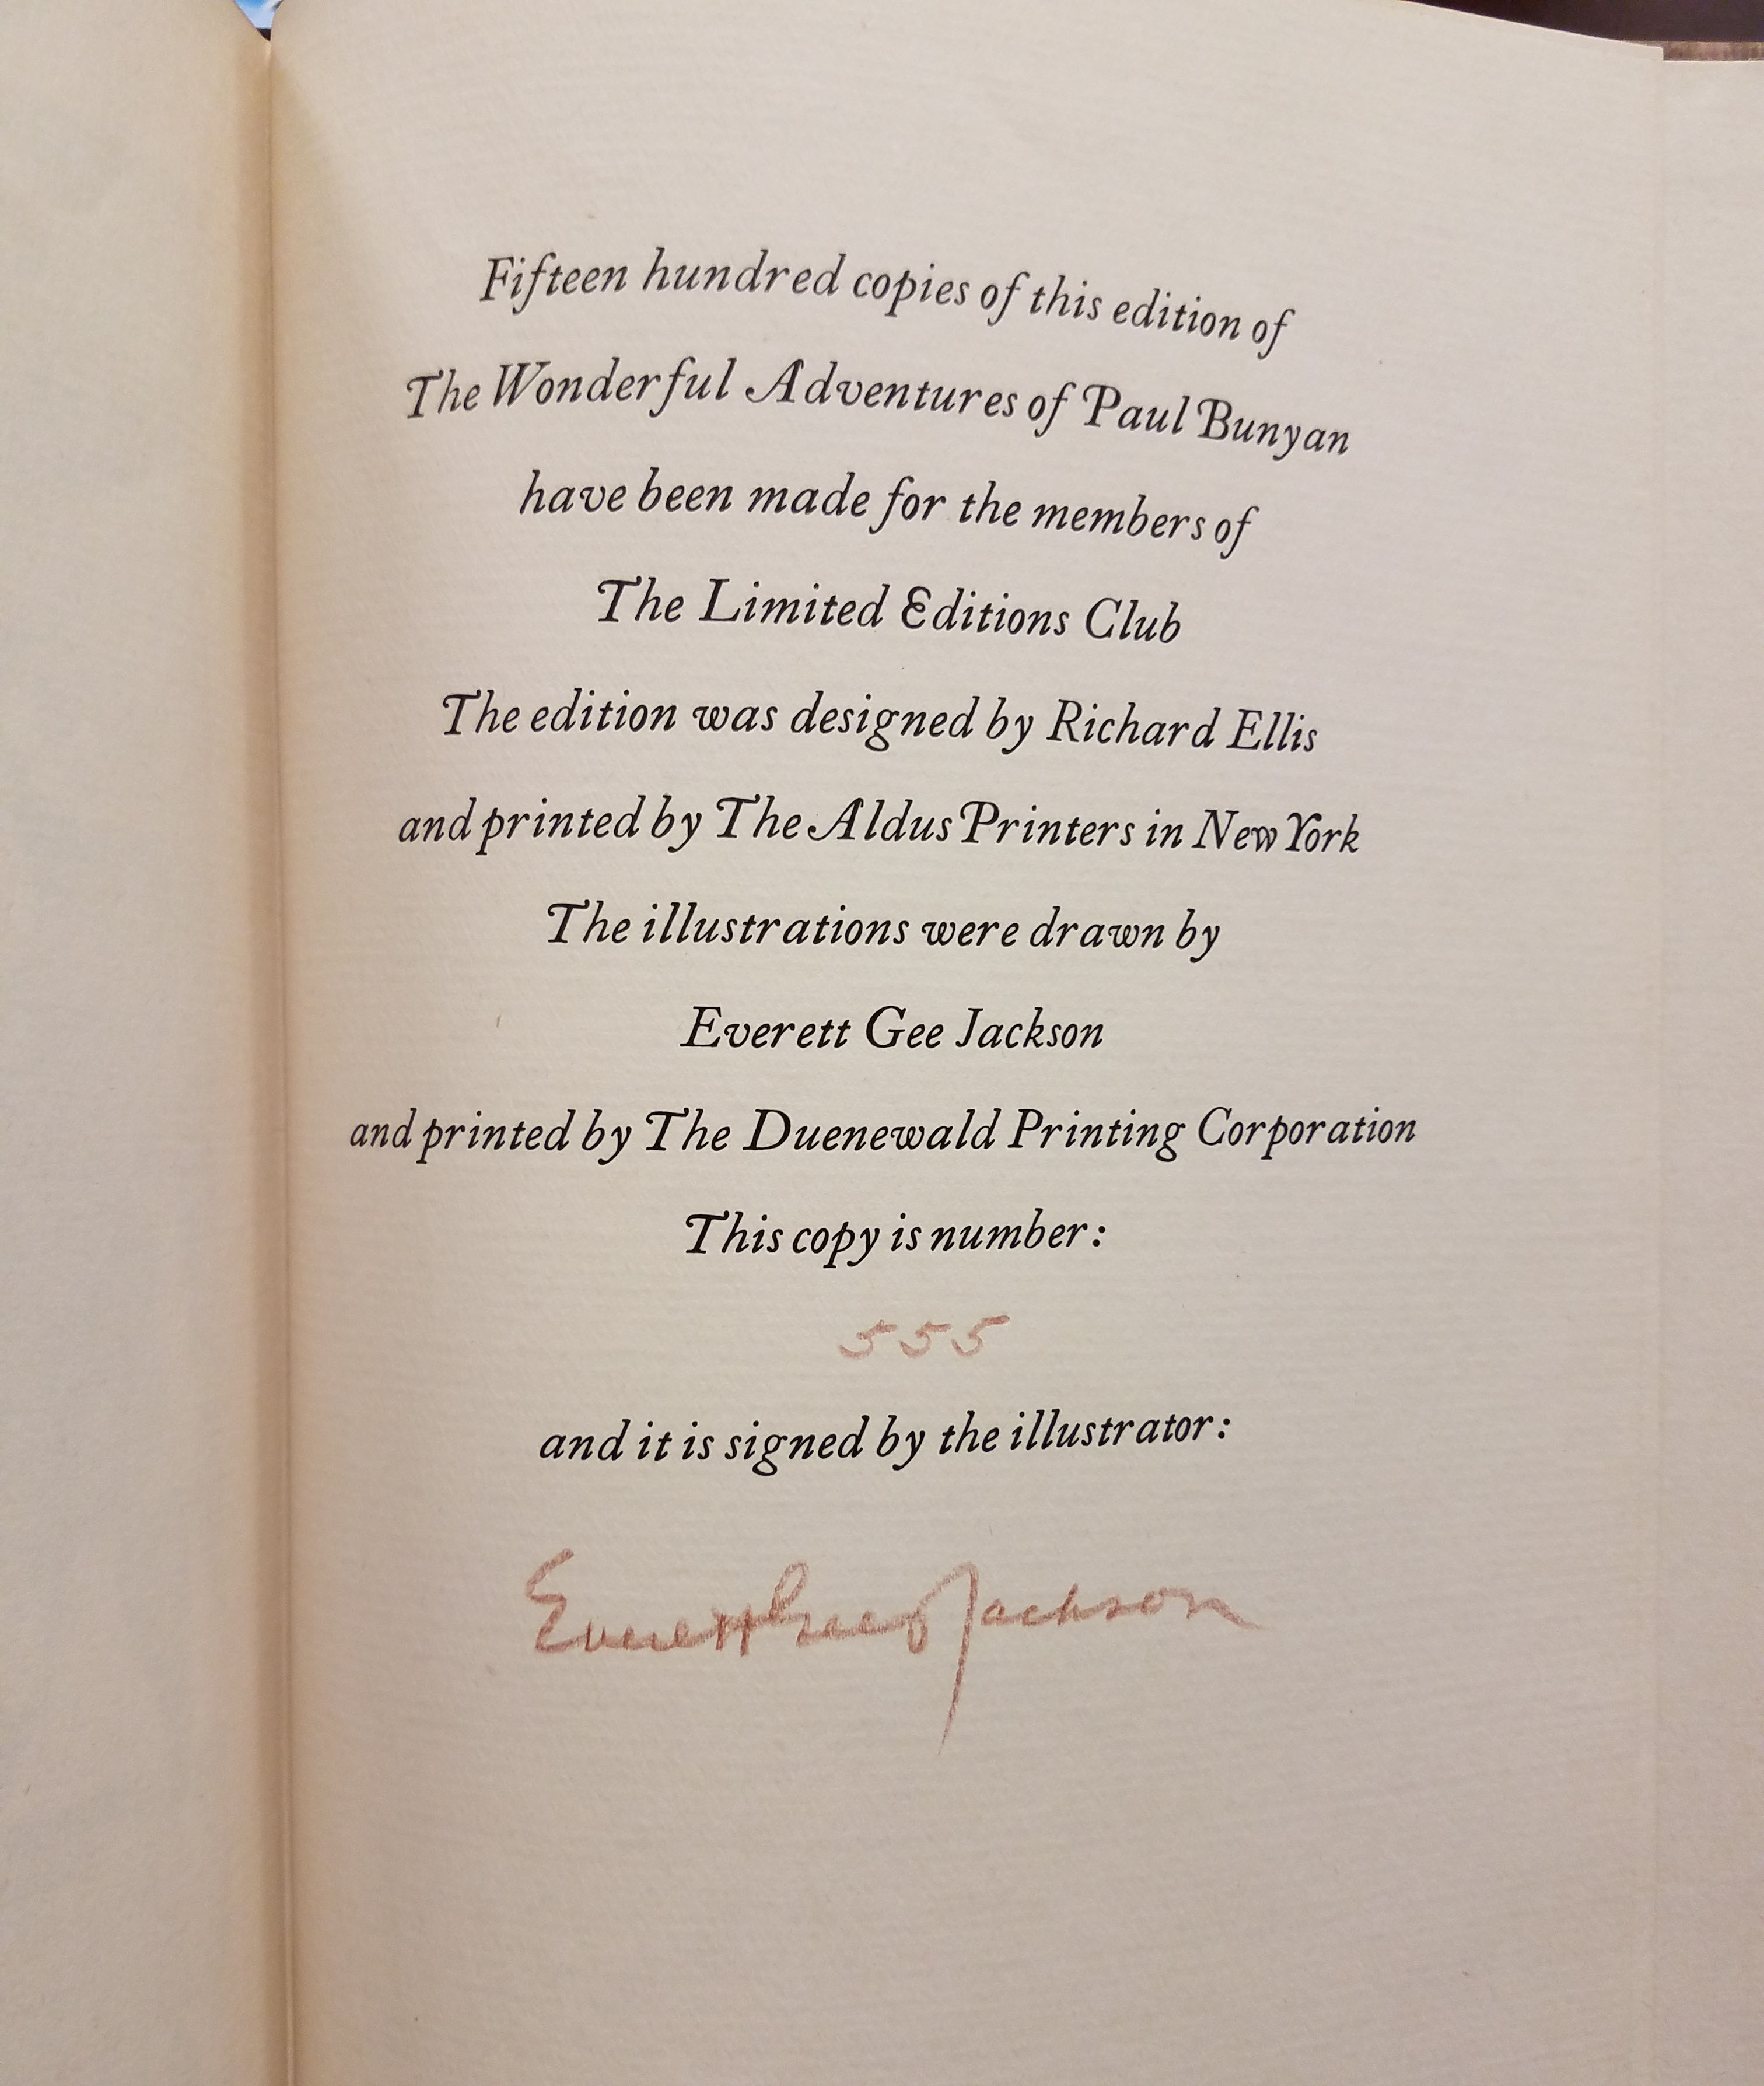 Signature page. Text reads: Fifteen hundred copies of this edition of The Wonderful Adventures of Paul Bunyan have been made for the members of The Limited Editions Club. The edition was designed by Richard Ellis and printed by The Aldus Printer in New York. The illustrations were drawn by Everett Gee Jackson and printed by The Dunewald Printing Corporation. This copy is number: 555 and is signed by the illustrator.